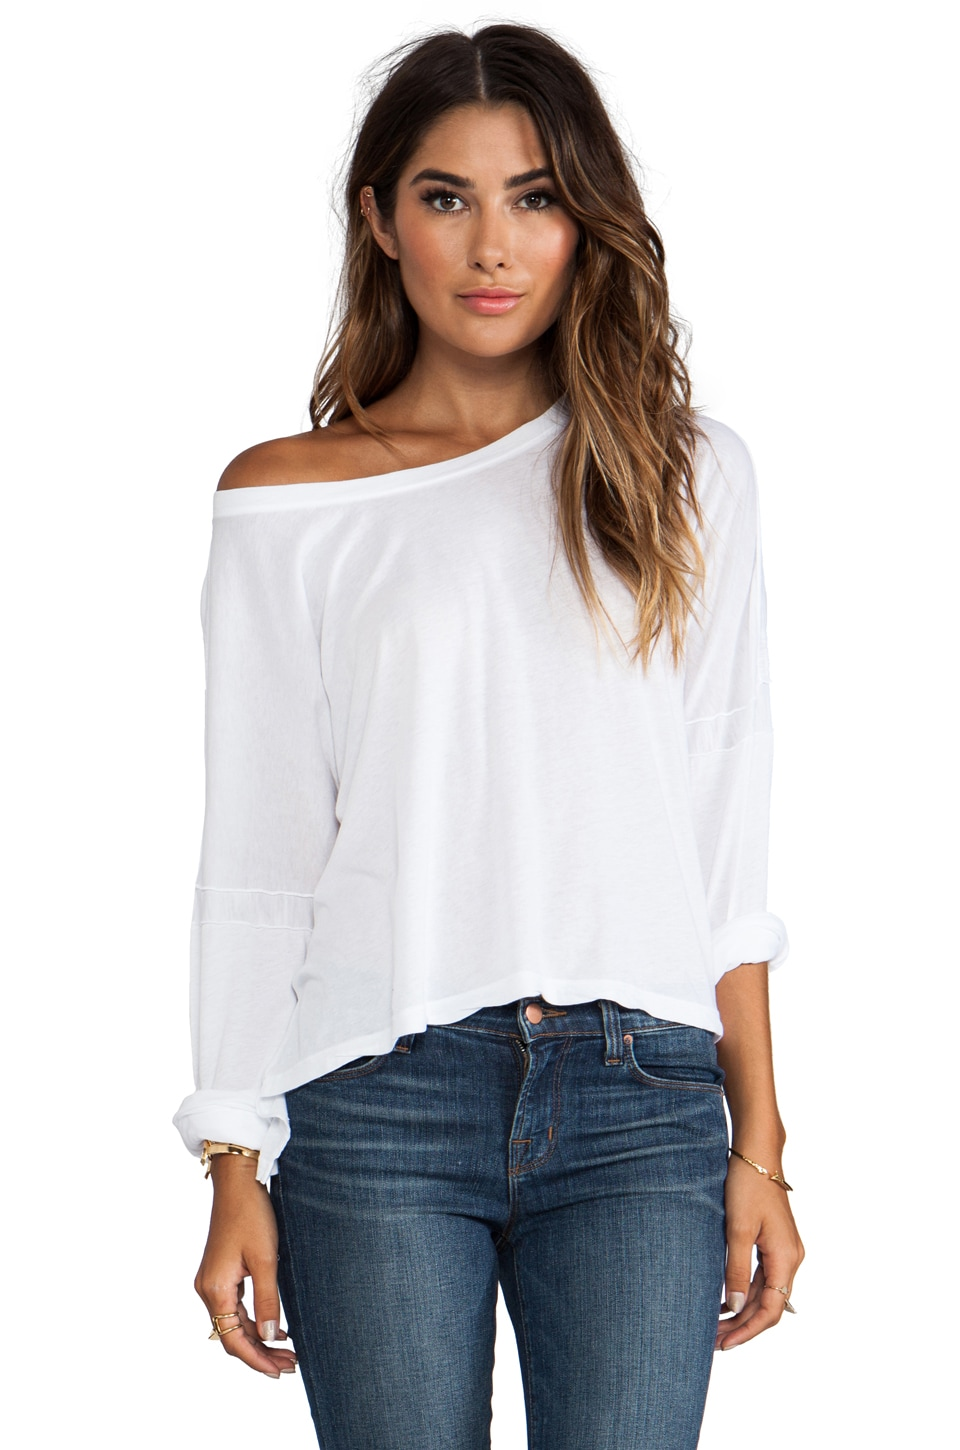 Daftbird 3/4 Sleeve Loose Tee in White